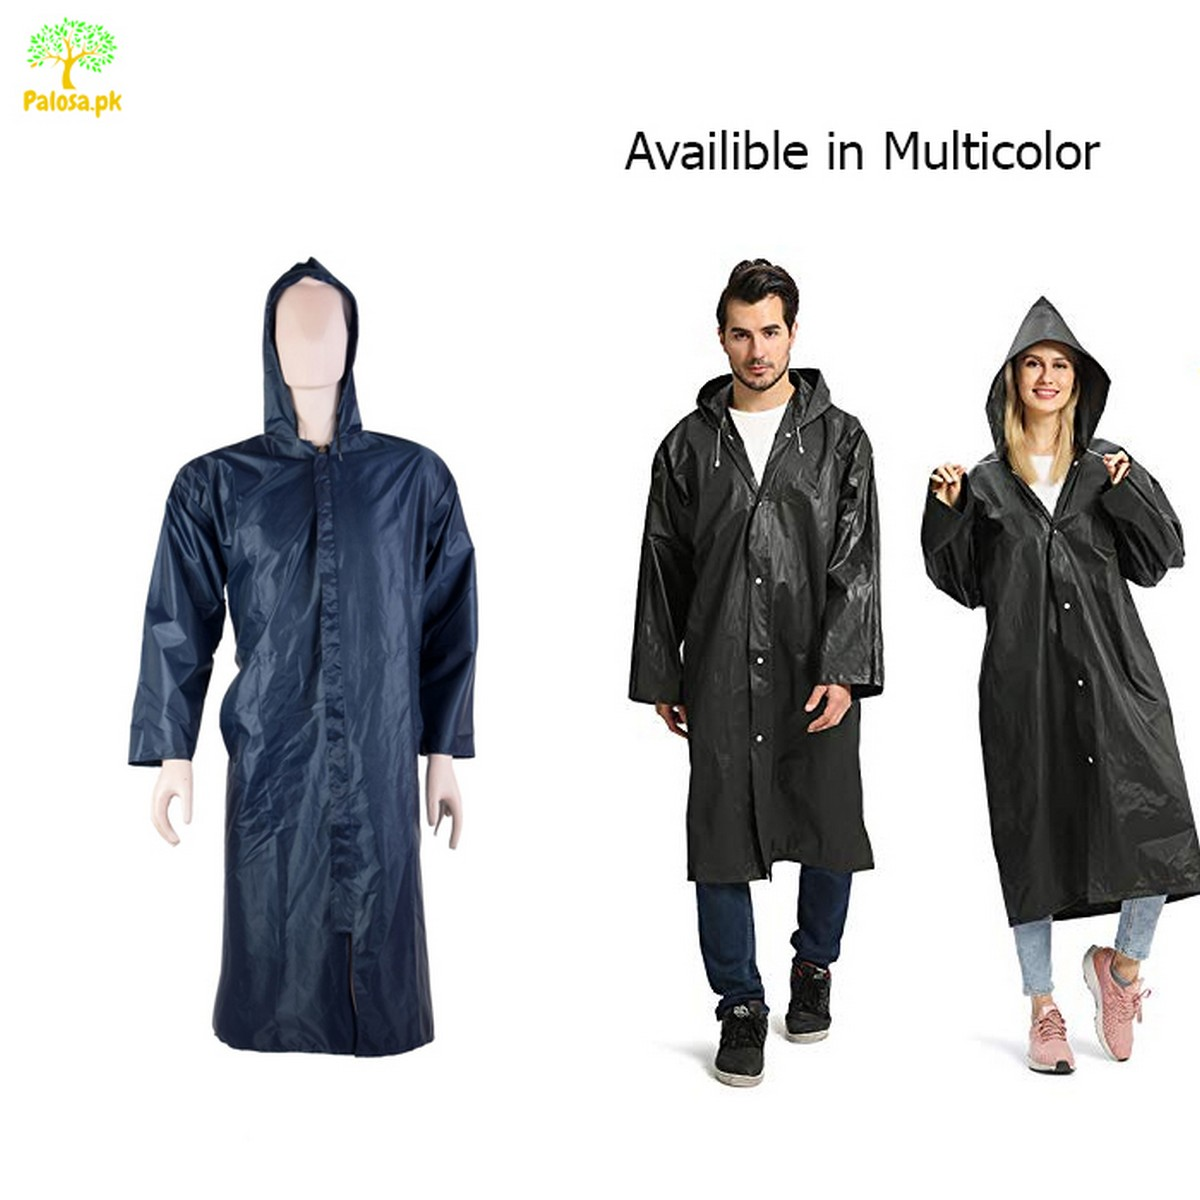 PalosaPk 1pcs Rain Coat Clothes. Waterproof Rain Suit For Motorcycle And Outdoor Activities. Made By Order Clothes